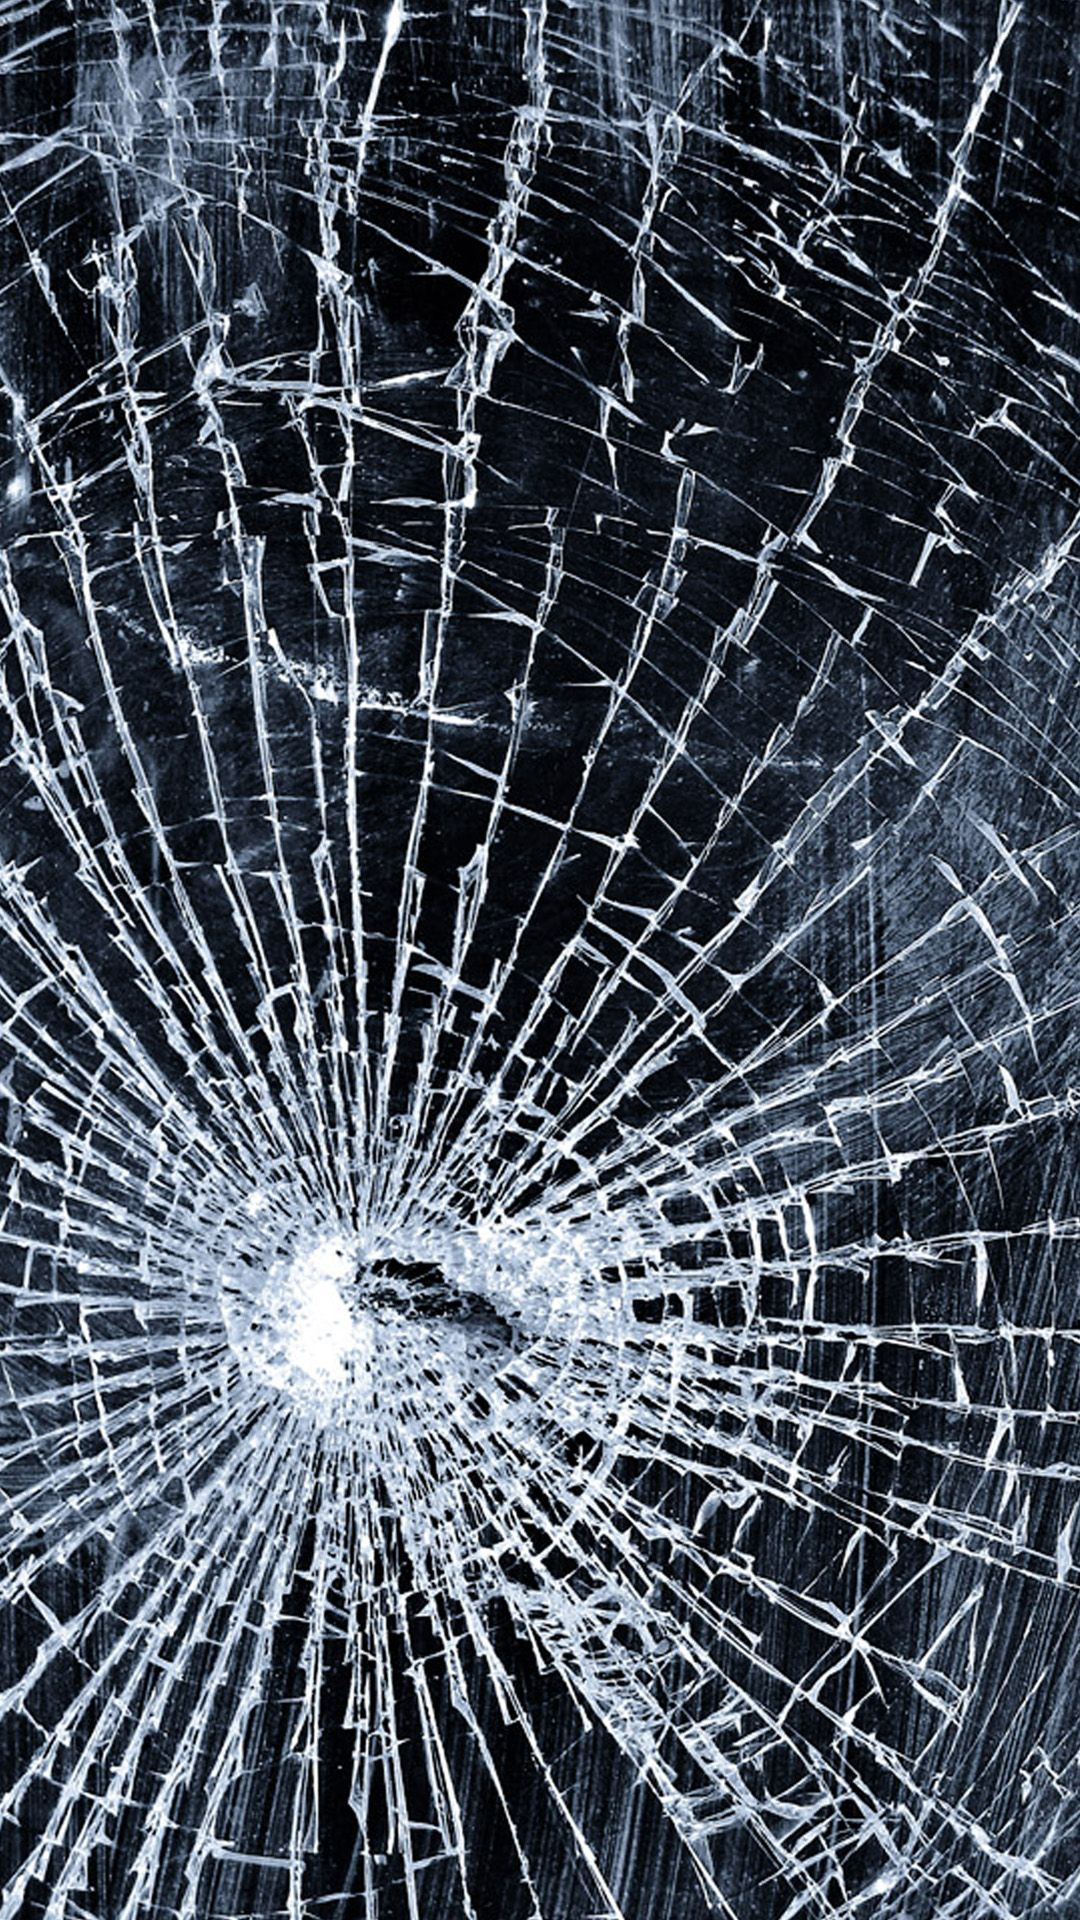 cracked screen wallpaper hd | wallpapers in 2019 | computer screen